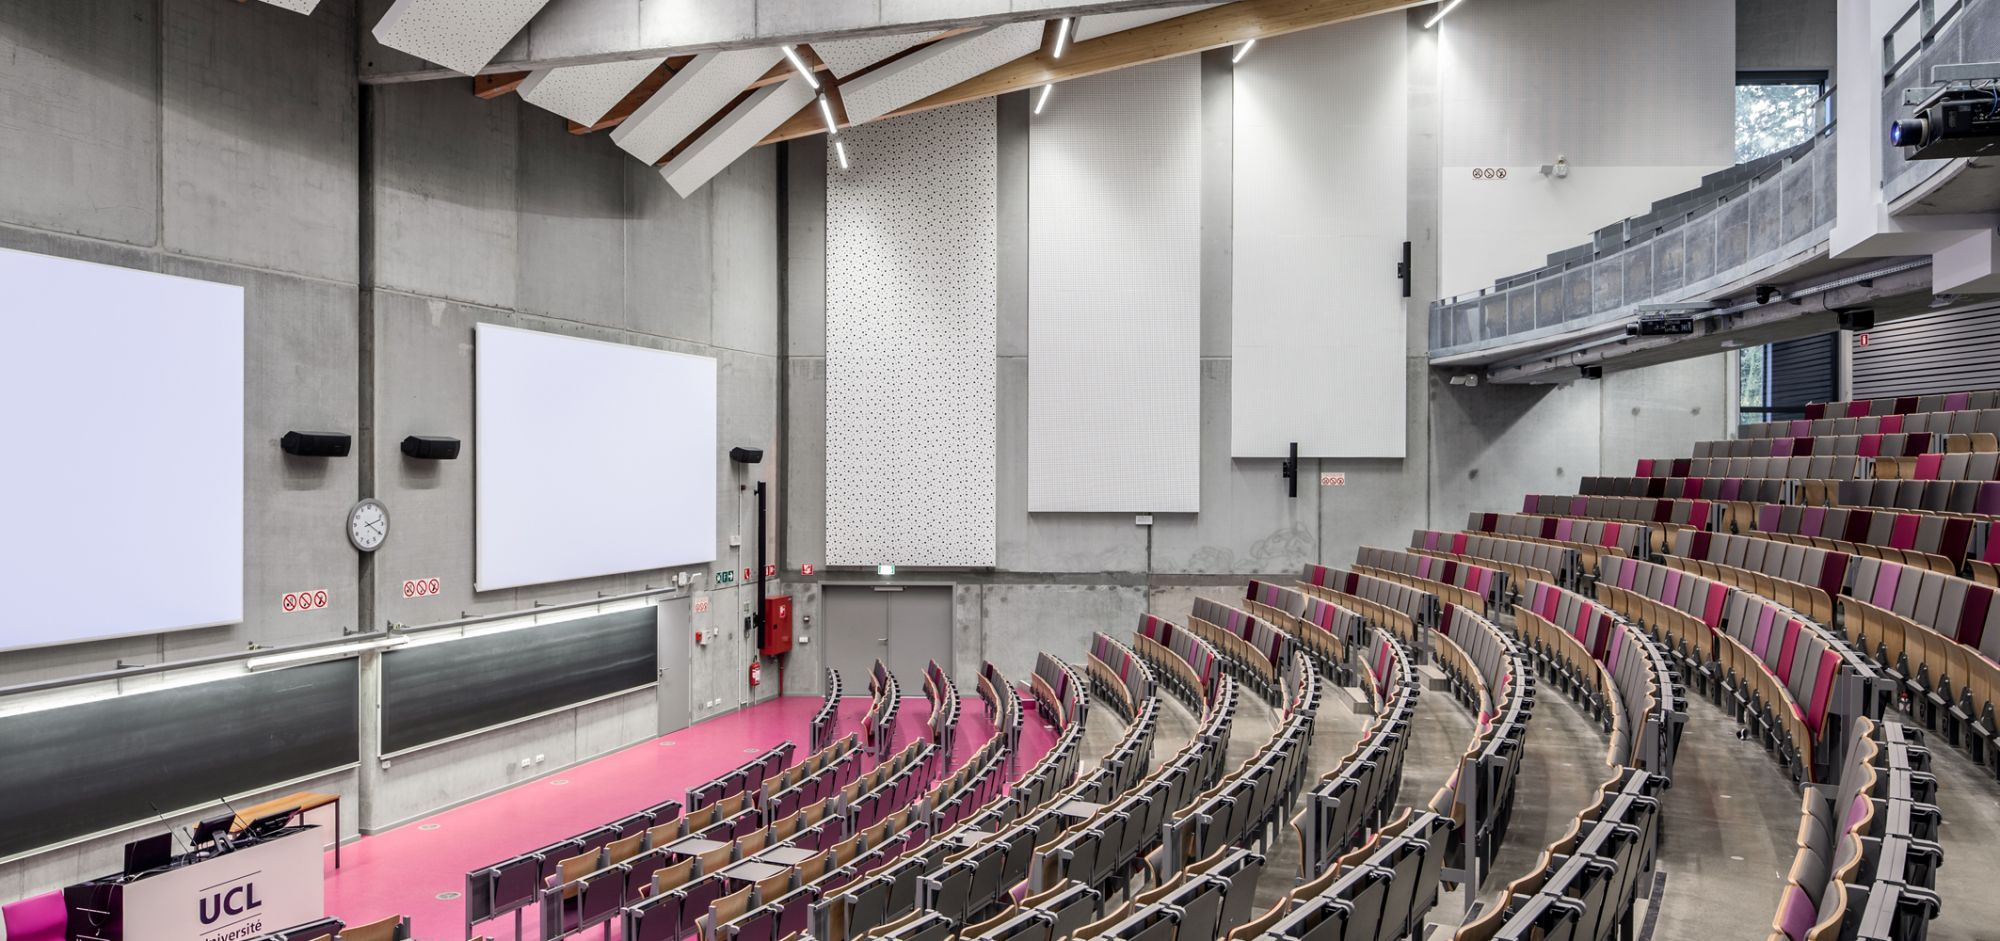 ucl-auditoir-andre-5